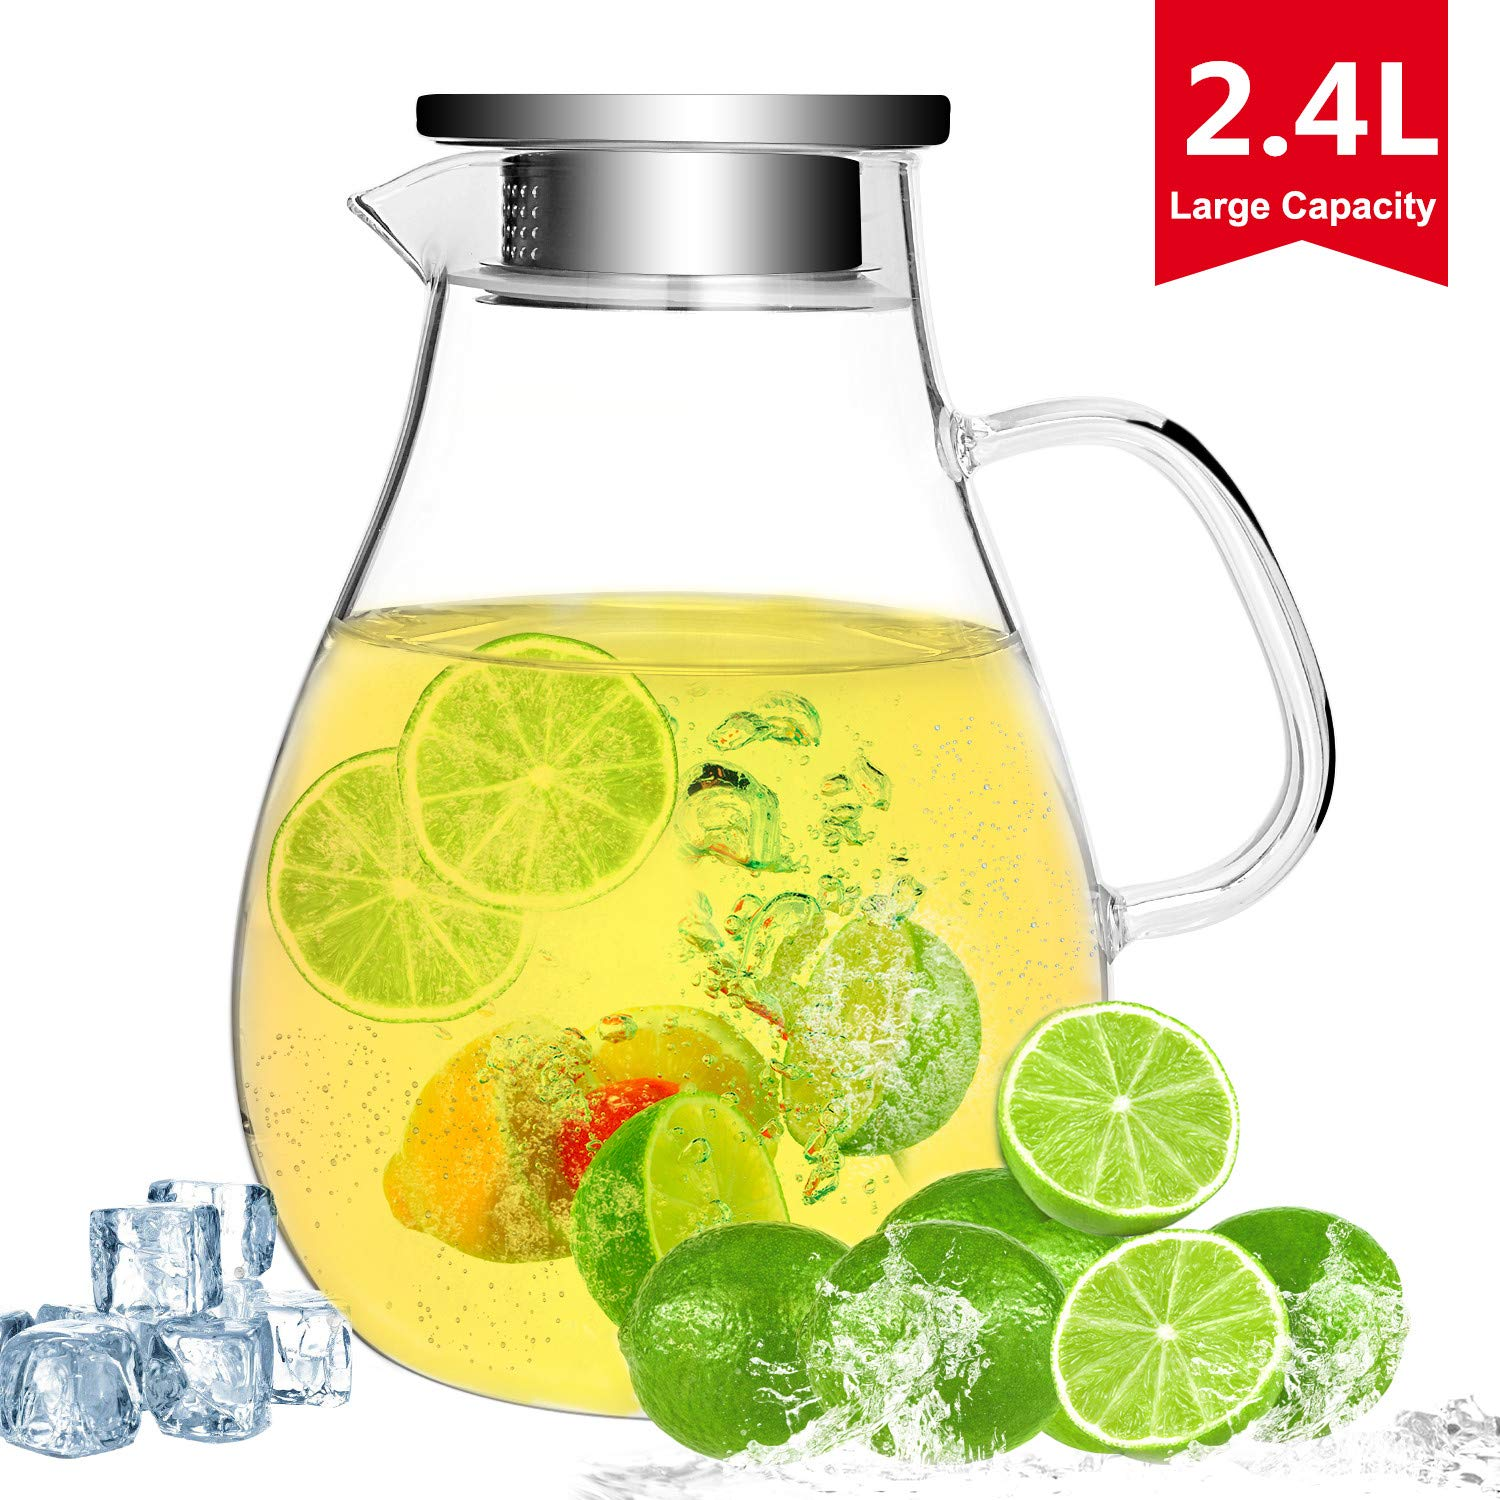 2.4 Liter Glass Water Pitcher with Lid, Large Glass Iced Tea Pitcher Jug with Handle and Spout 80 Ounces for Hot/Cold Liquid Water Safe, BPA-Free